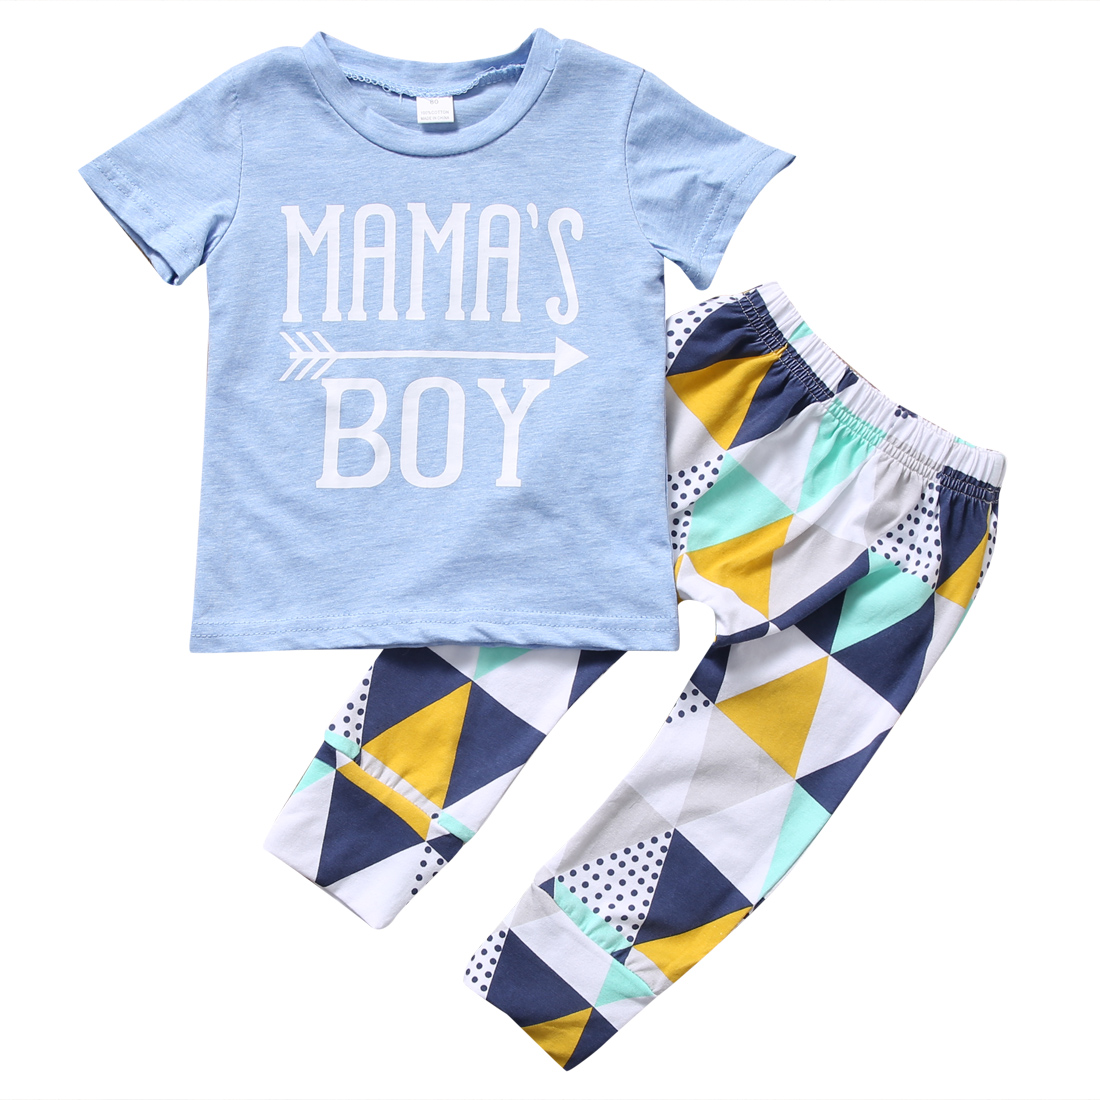 2017 Cute Newborn Baby Boy Clothes Summer Short Sleeve Mama's Boy Cotton T-shirt Tops Pant 2PCS Outfit Toddler Kids Clothing Set summer baby boy clothes set cotton short sleeved mickey t shirt striped pants 2pcs newborn baby girl clothing set sport suits